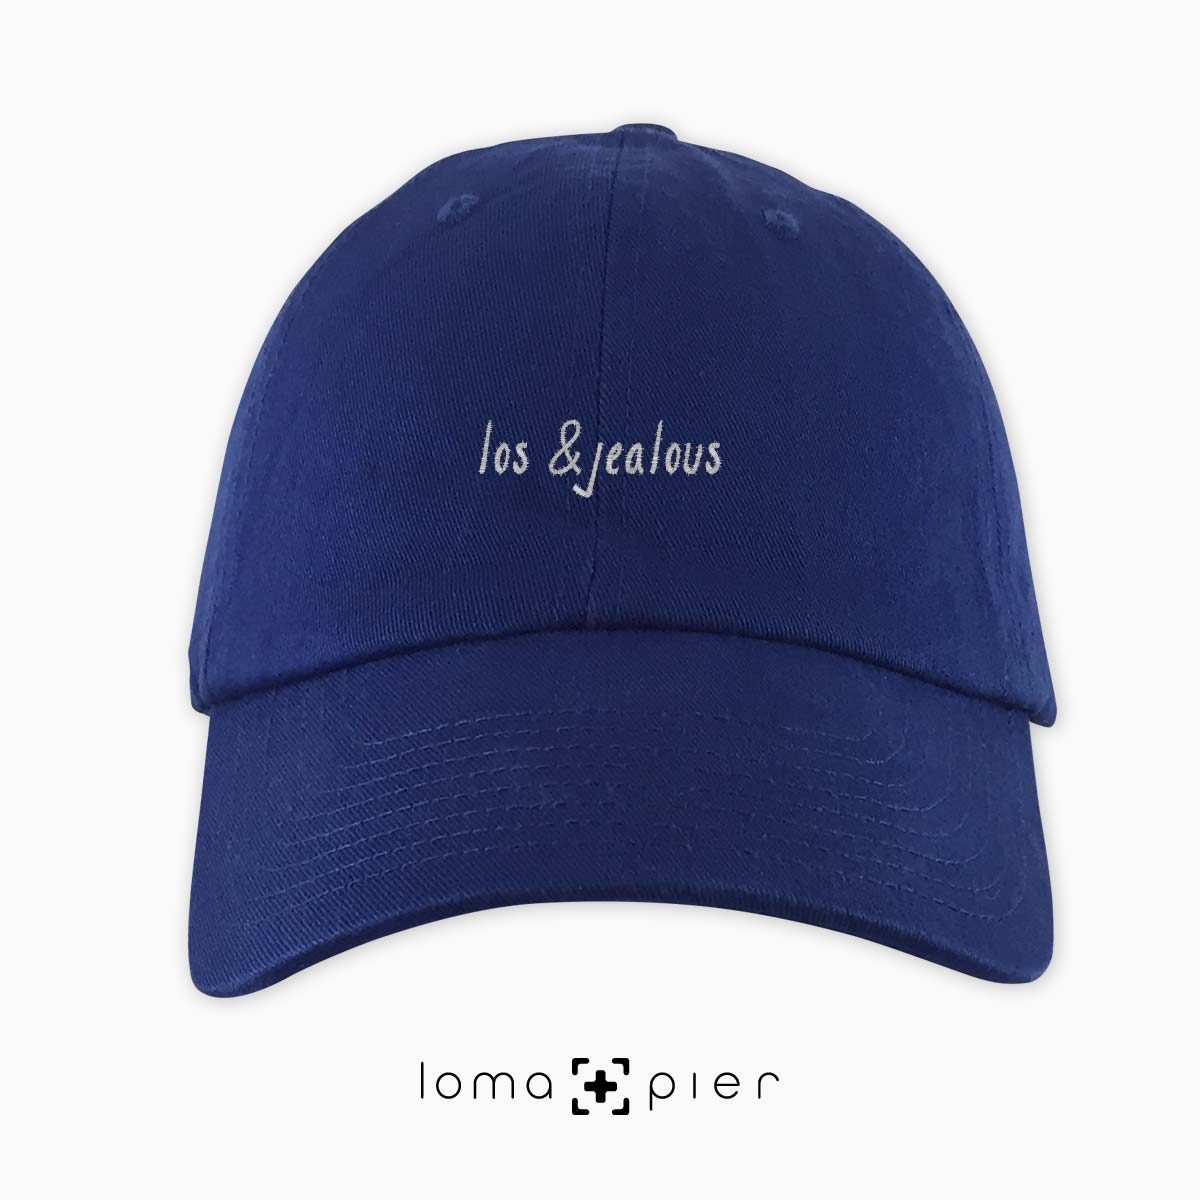 LOS &JEALOUS typography embroidered royal blue dad hat white thread loma+pier hat store made in USA